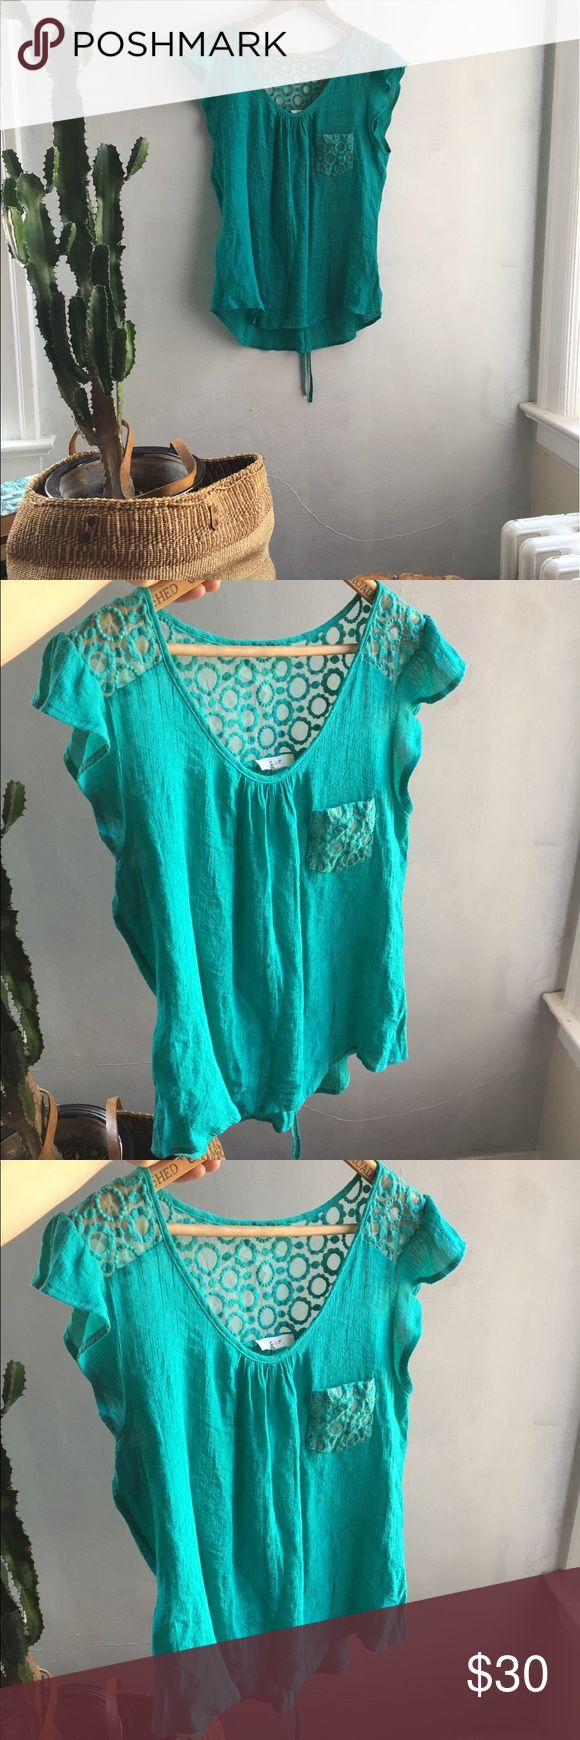 Cute Turquoise blouse Dang cute! A great blouse for summer parties and more! Size large but fits smalls and mediums fine. Sheer backing with a darling embroidered design. Hi-low cut and a draw string in the back to make this fitted to your liking ❤️ Tops Blouses